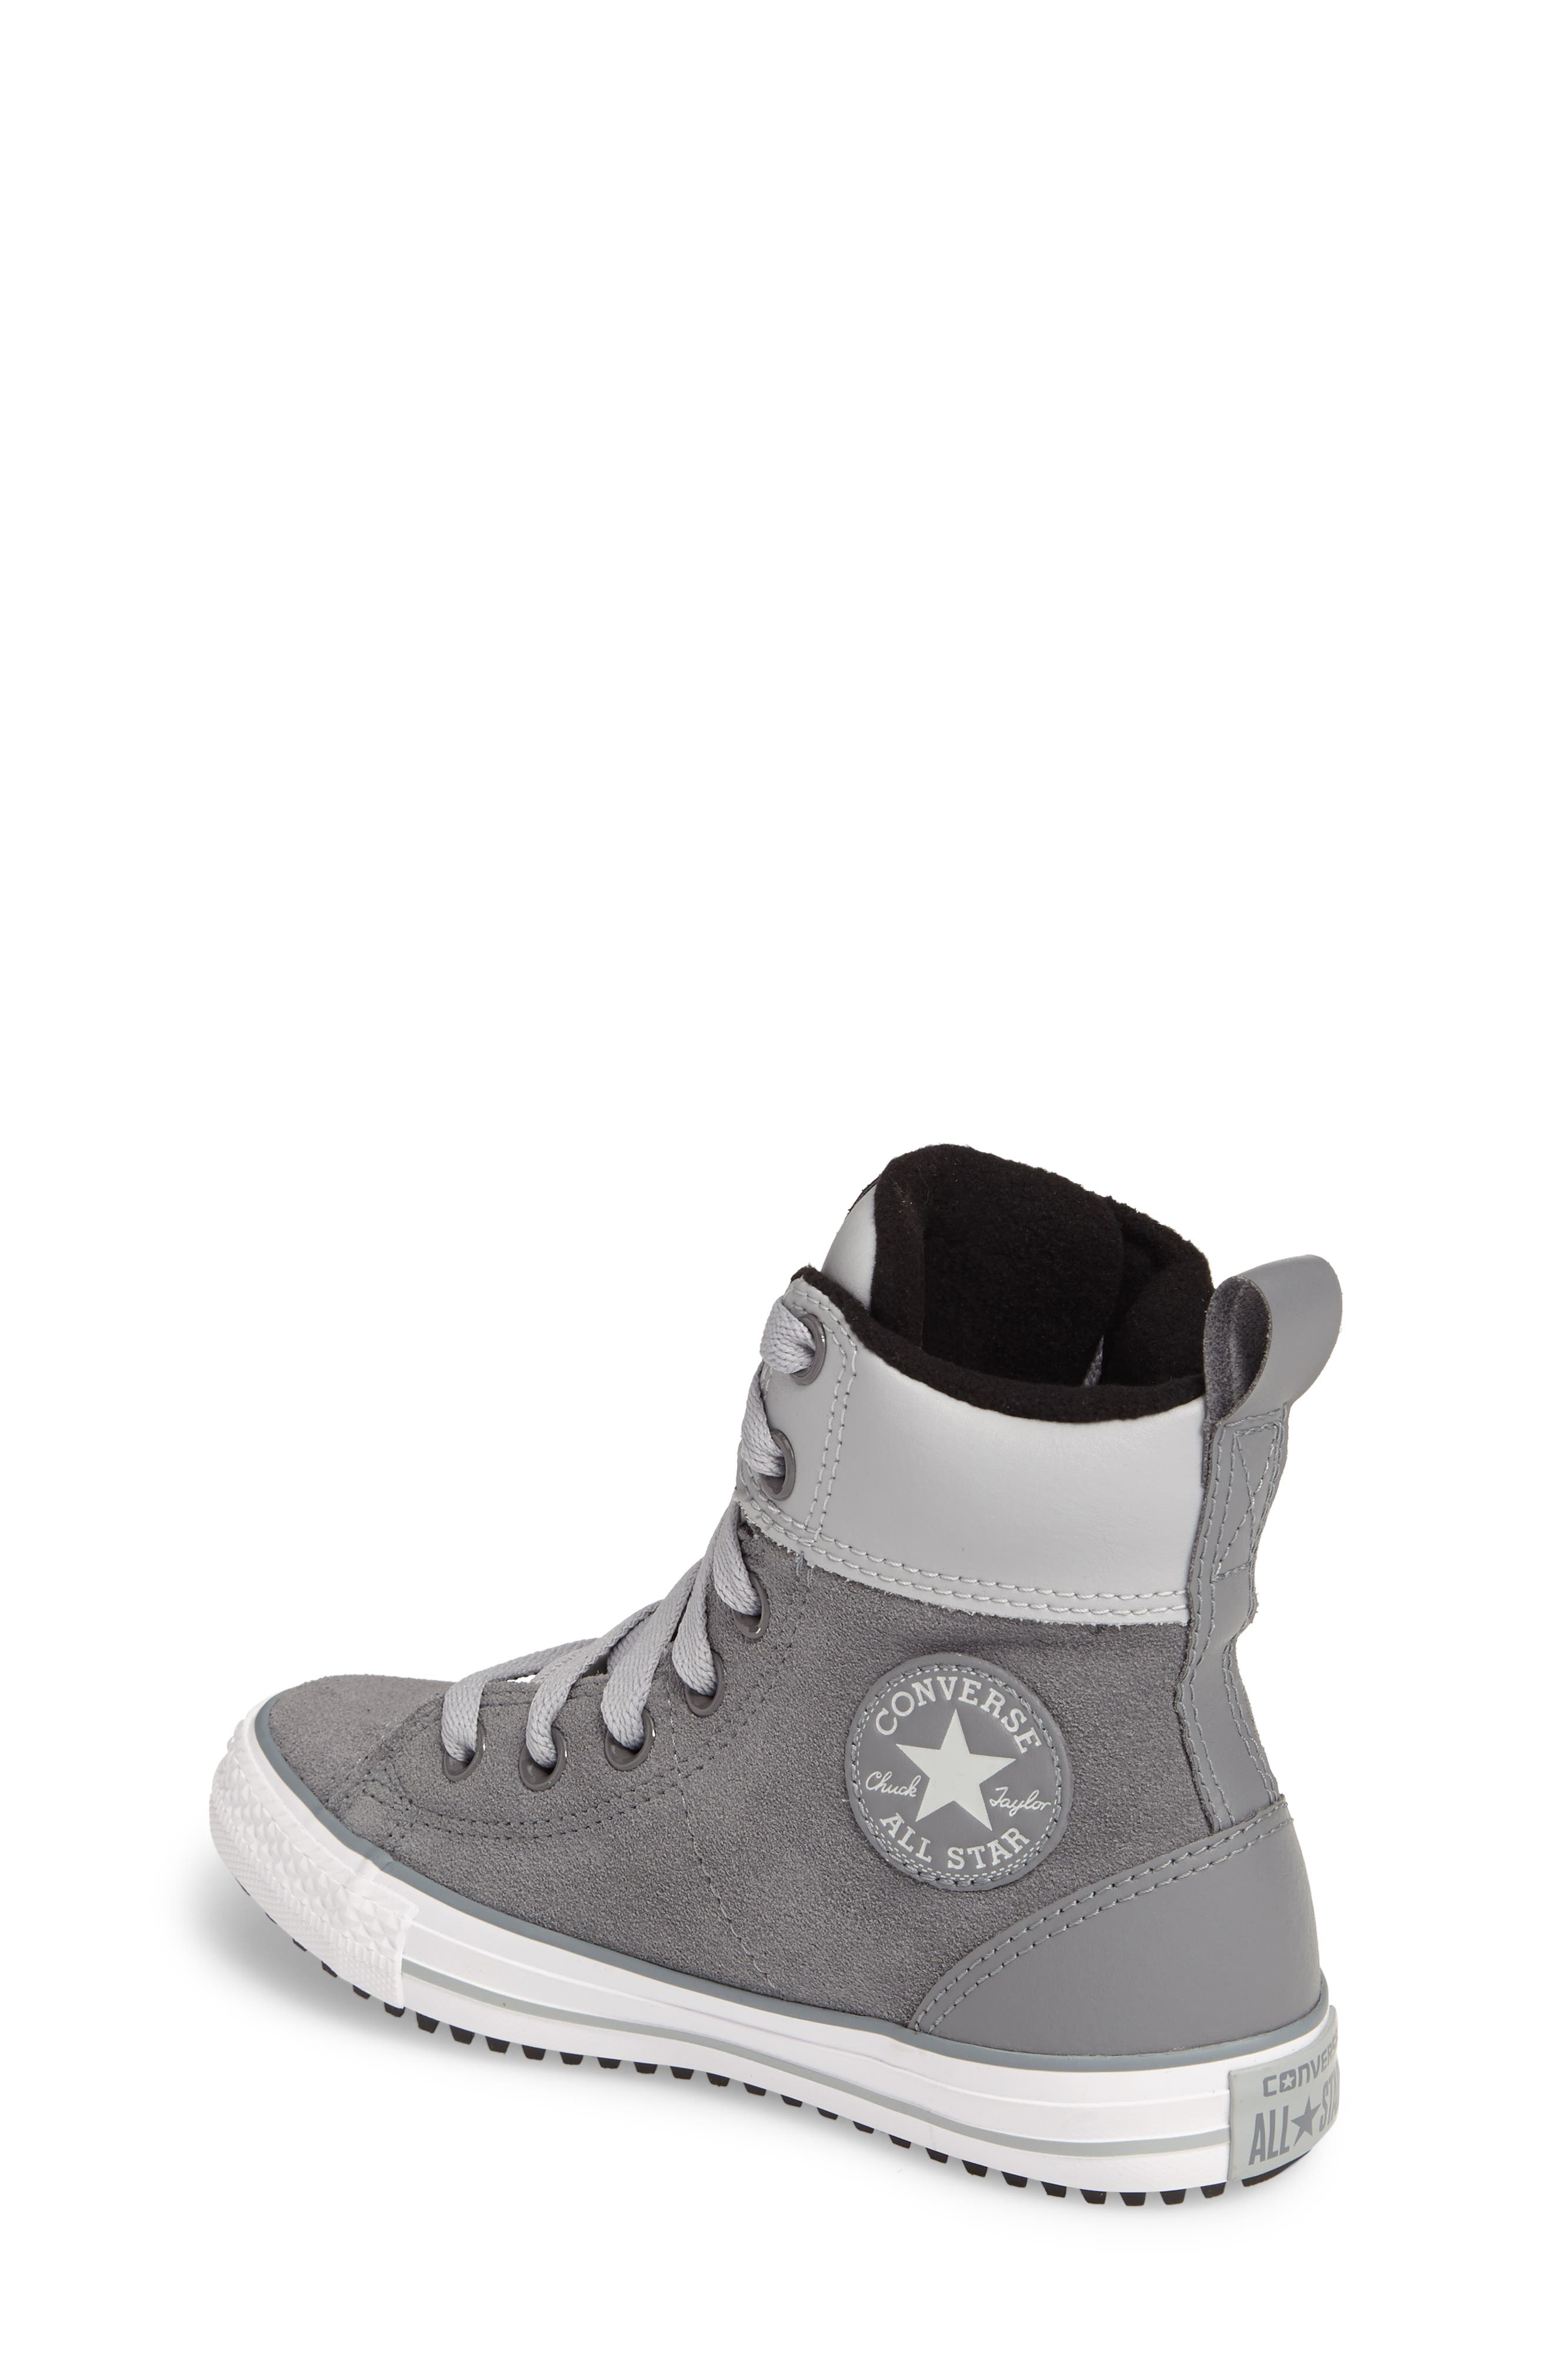 Chuck Taylor<sup>®</sup> All Star<sup>®</sup> Asphalt Sneaker Boot,                             Alternate thumbnail 2, color,                             039